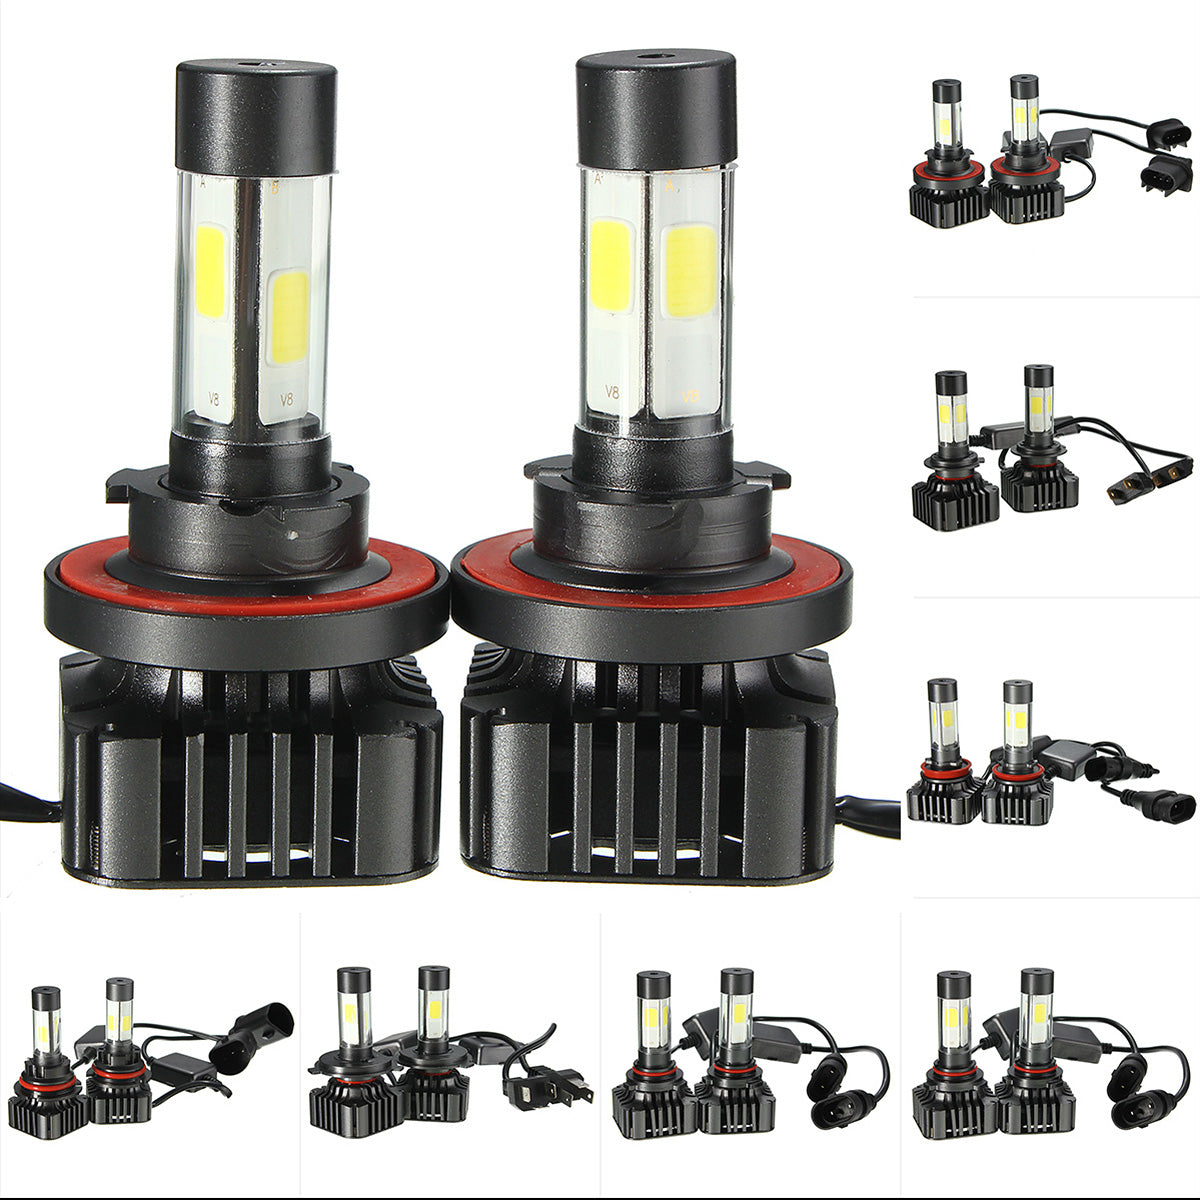 Pair V8 40W 4800LM 6000K White Car COB LED Headlights H4 H7 H8/H11 H13 9004 9005 9006